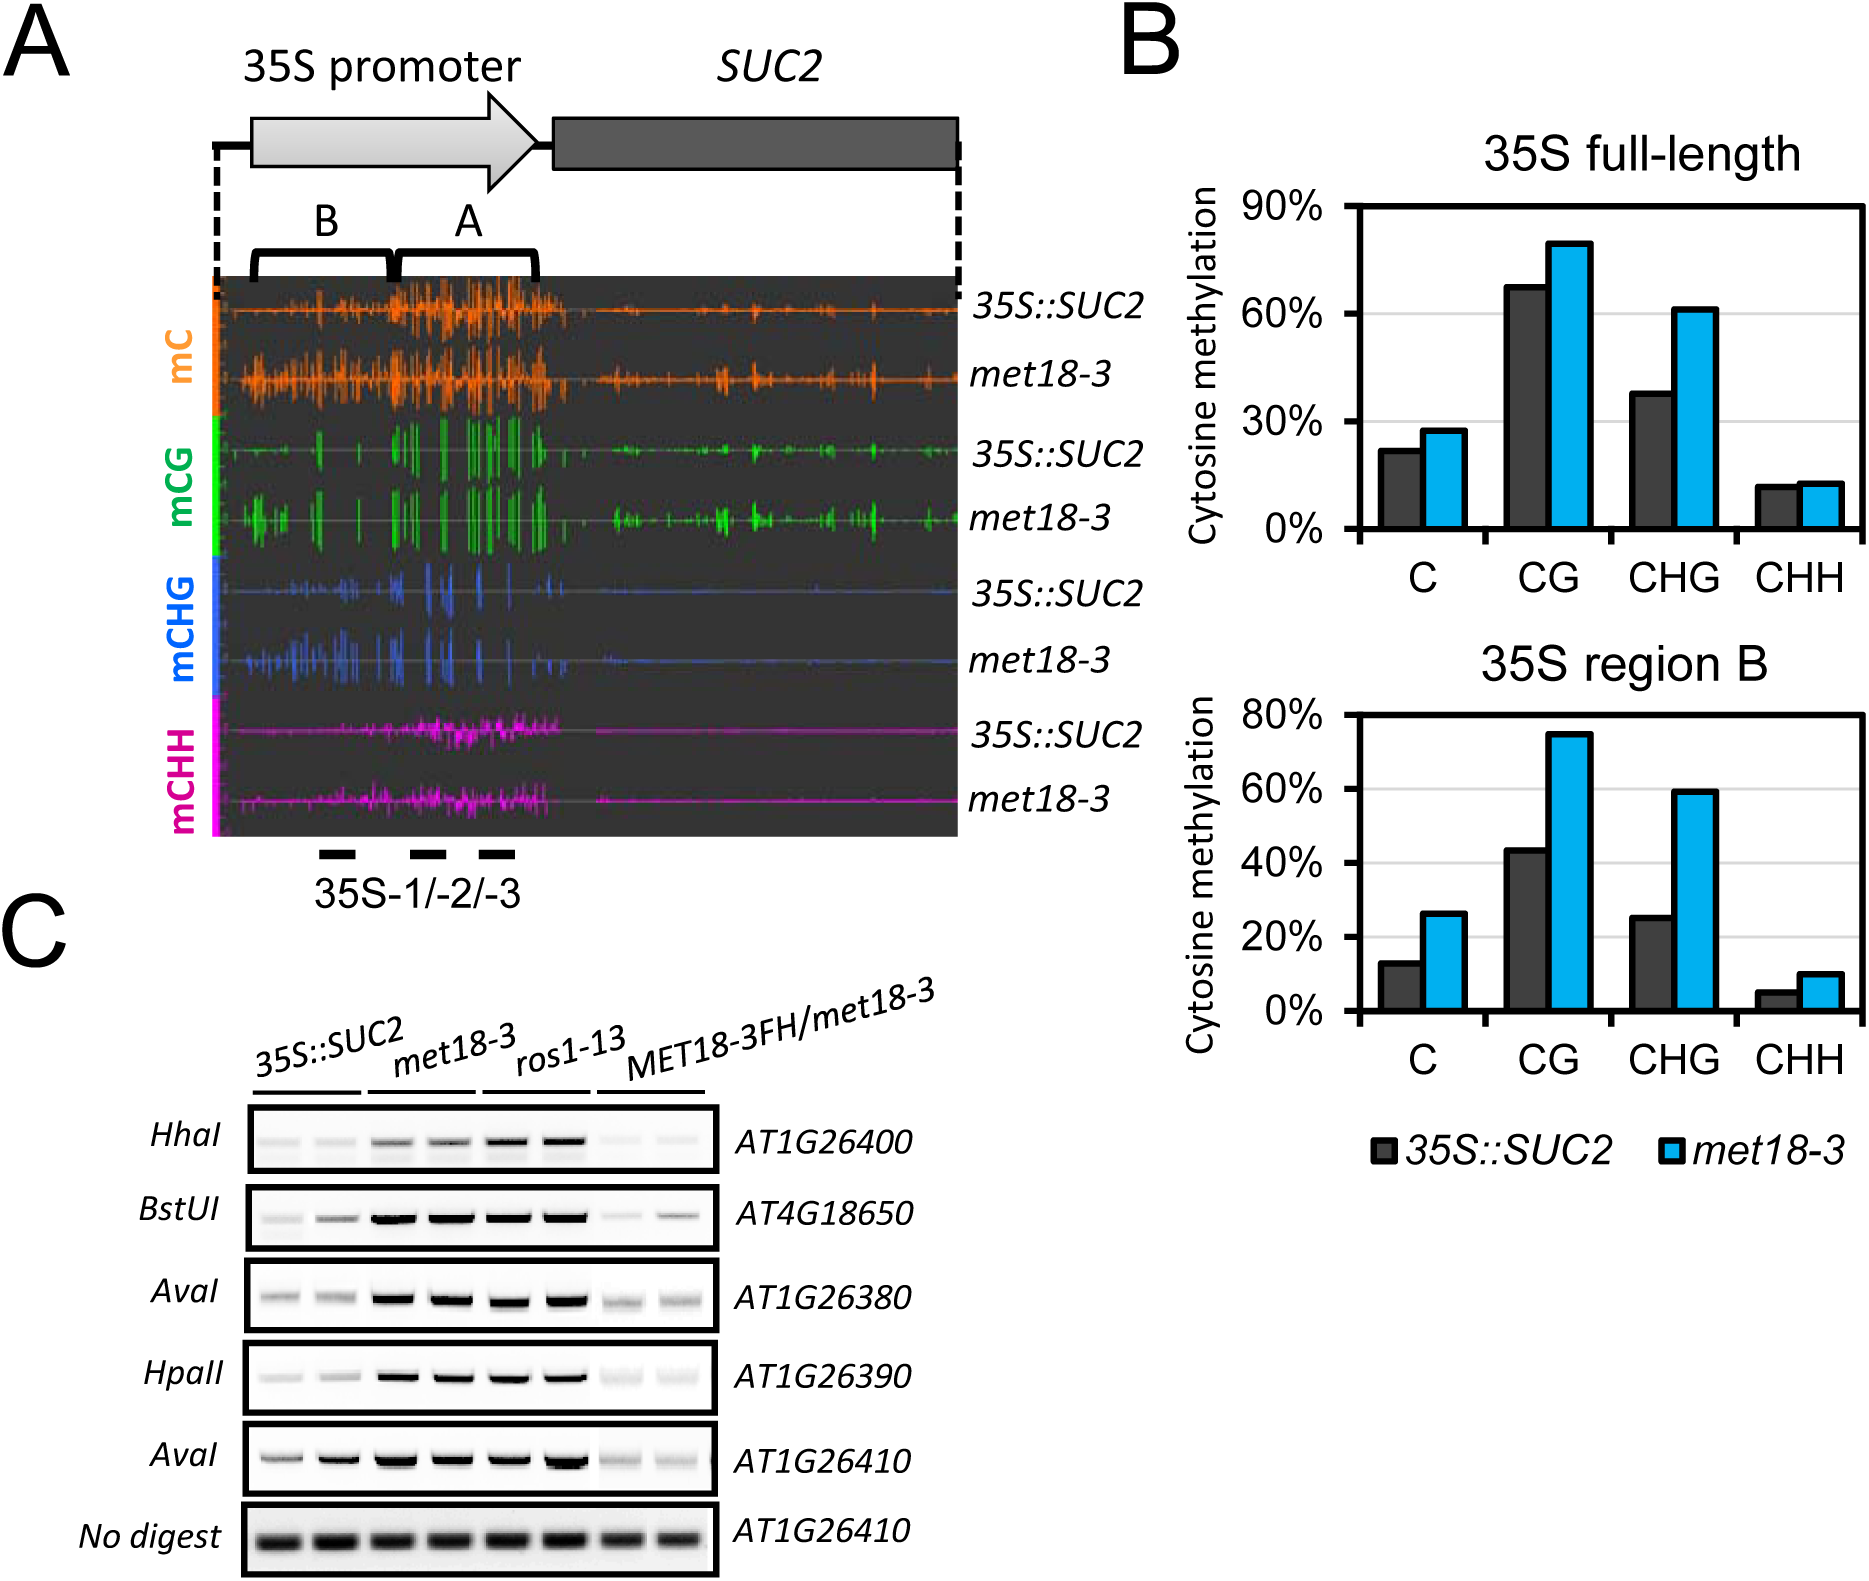 Epigenetic modification changes of the <i>35S</i>::<i>SUC2 transgene</i> promoter in <i>met18-3</i> mutant.